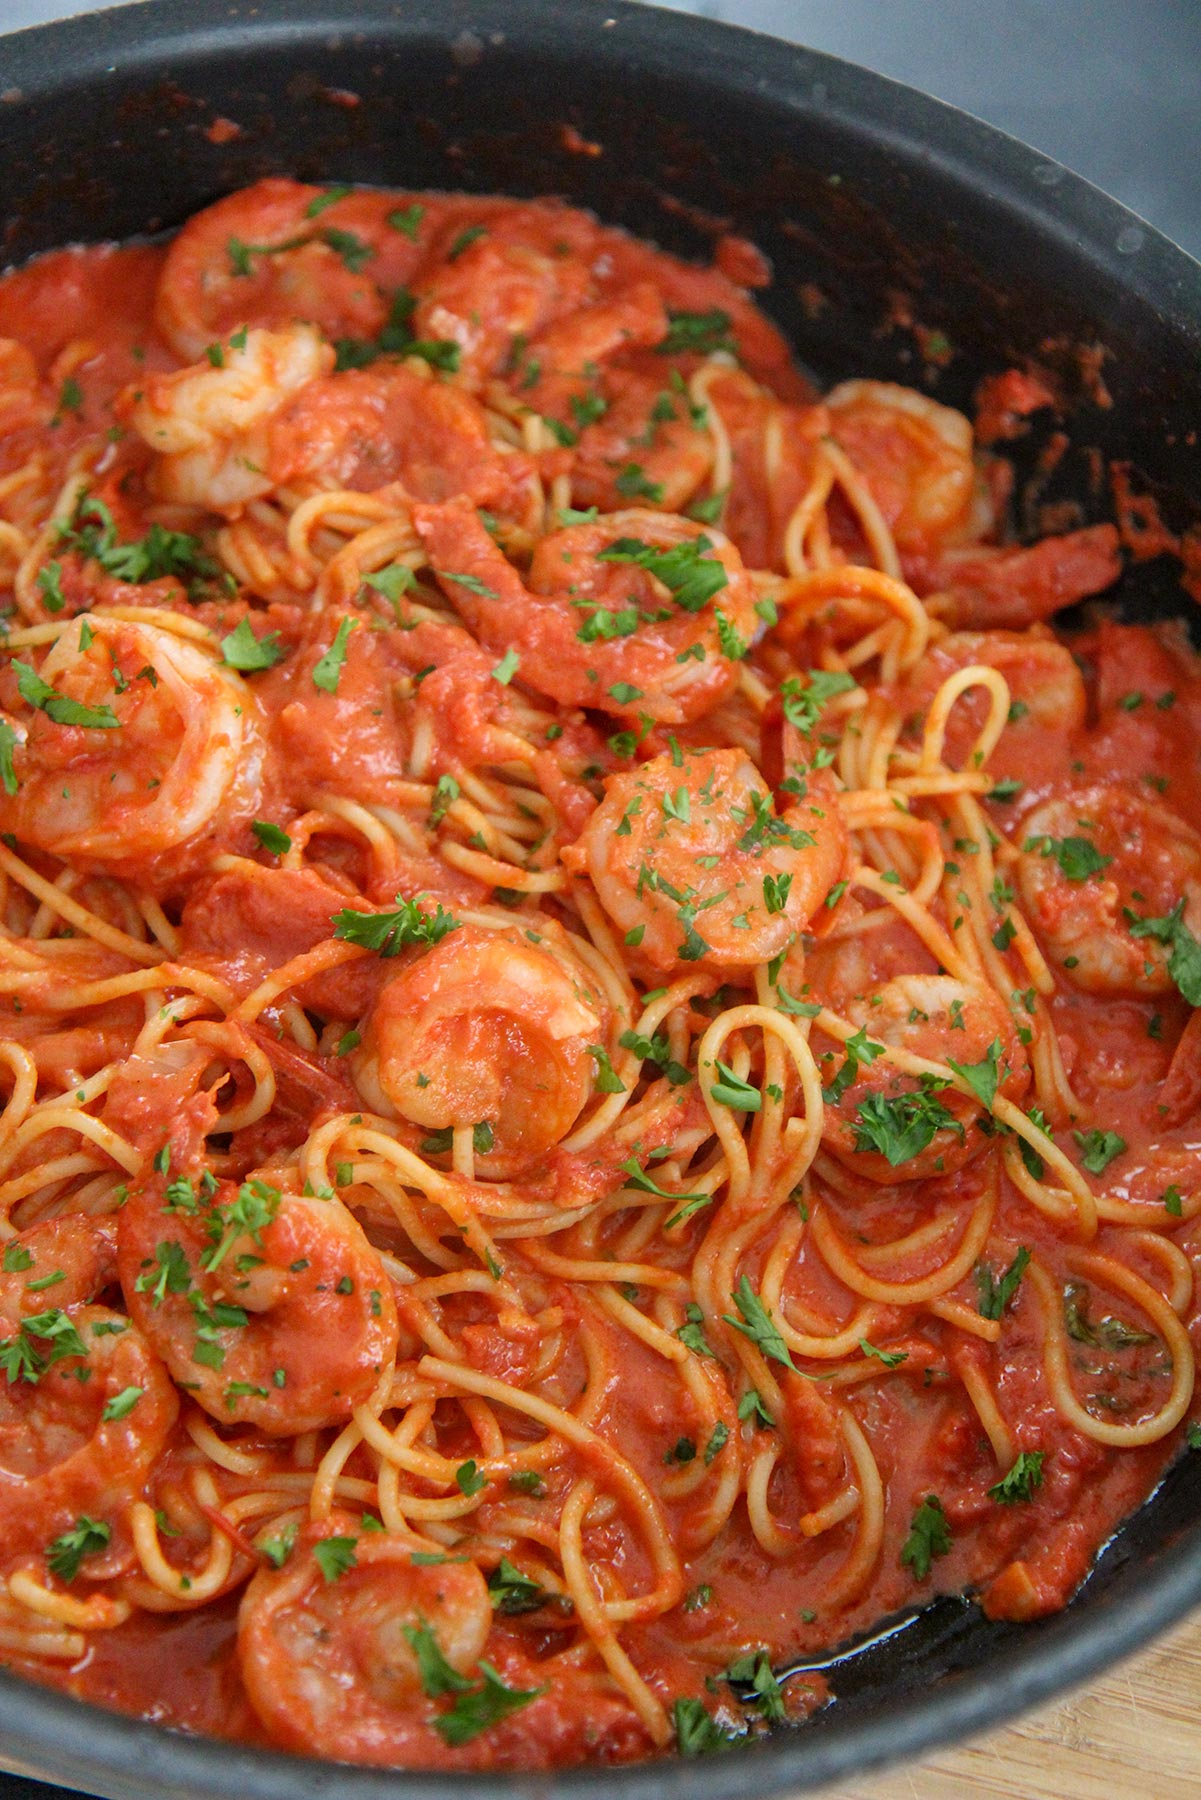 creamy spicy shrimp spaghetti with parsley in a black skillet